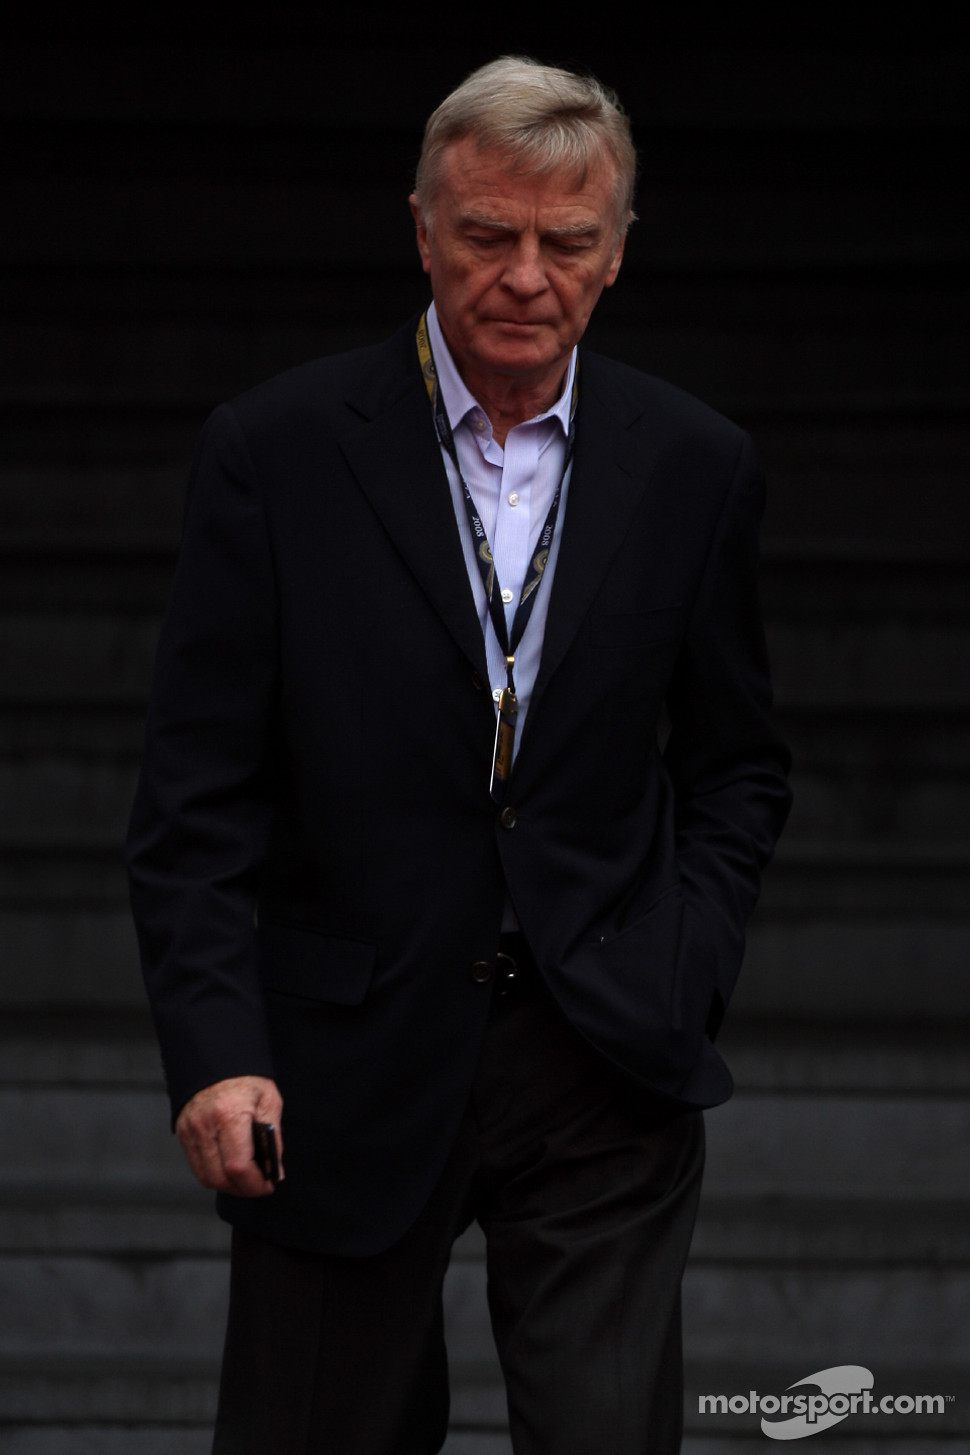 Max Mosley, FIA President